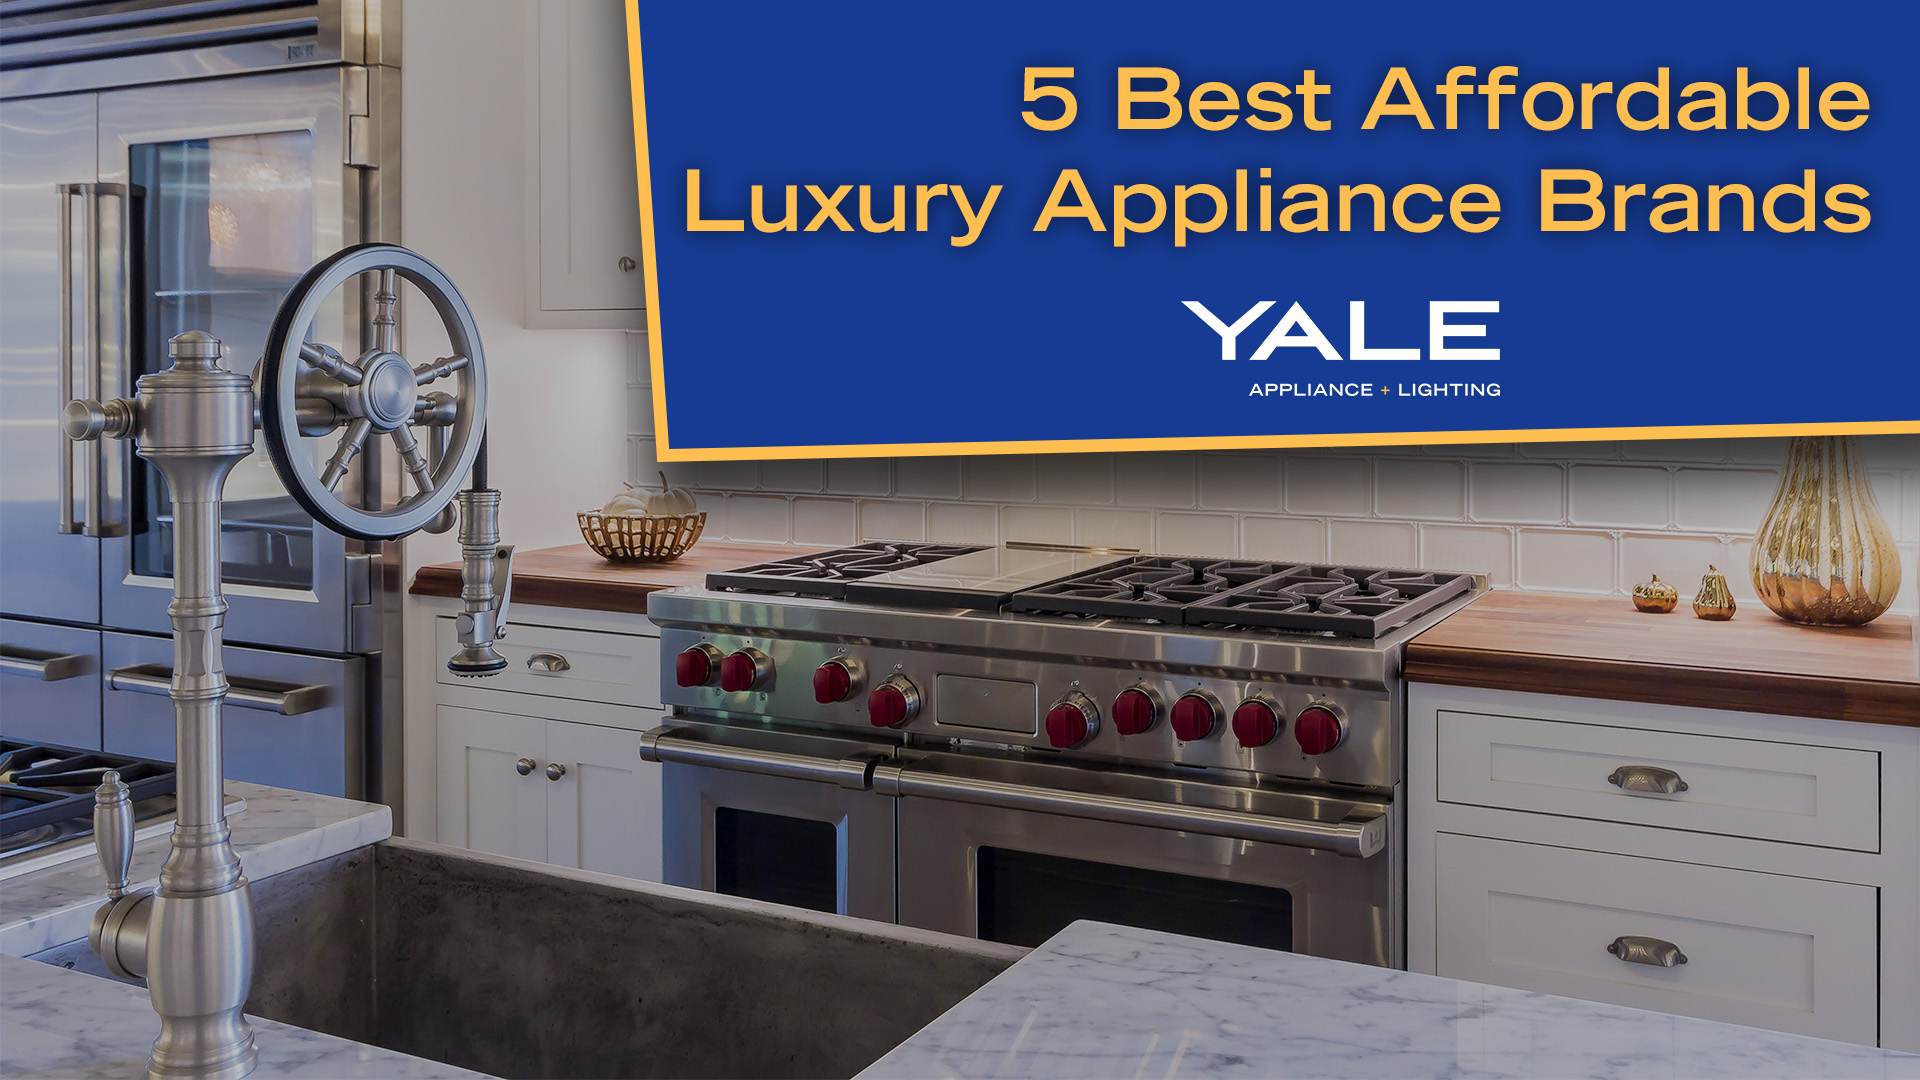 Amazing Yale Appliance Blog